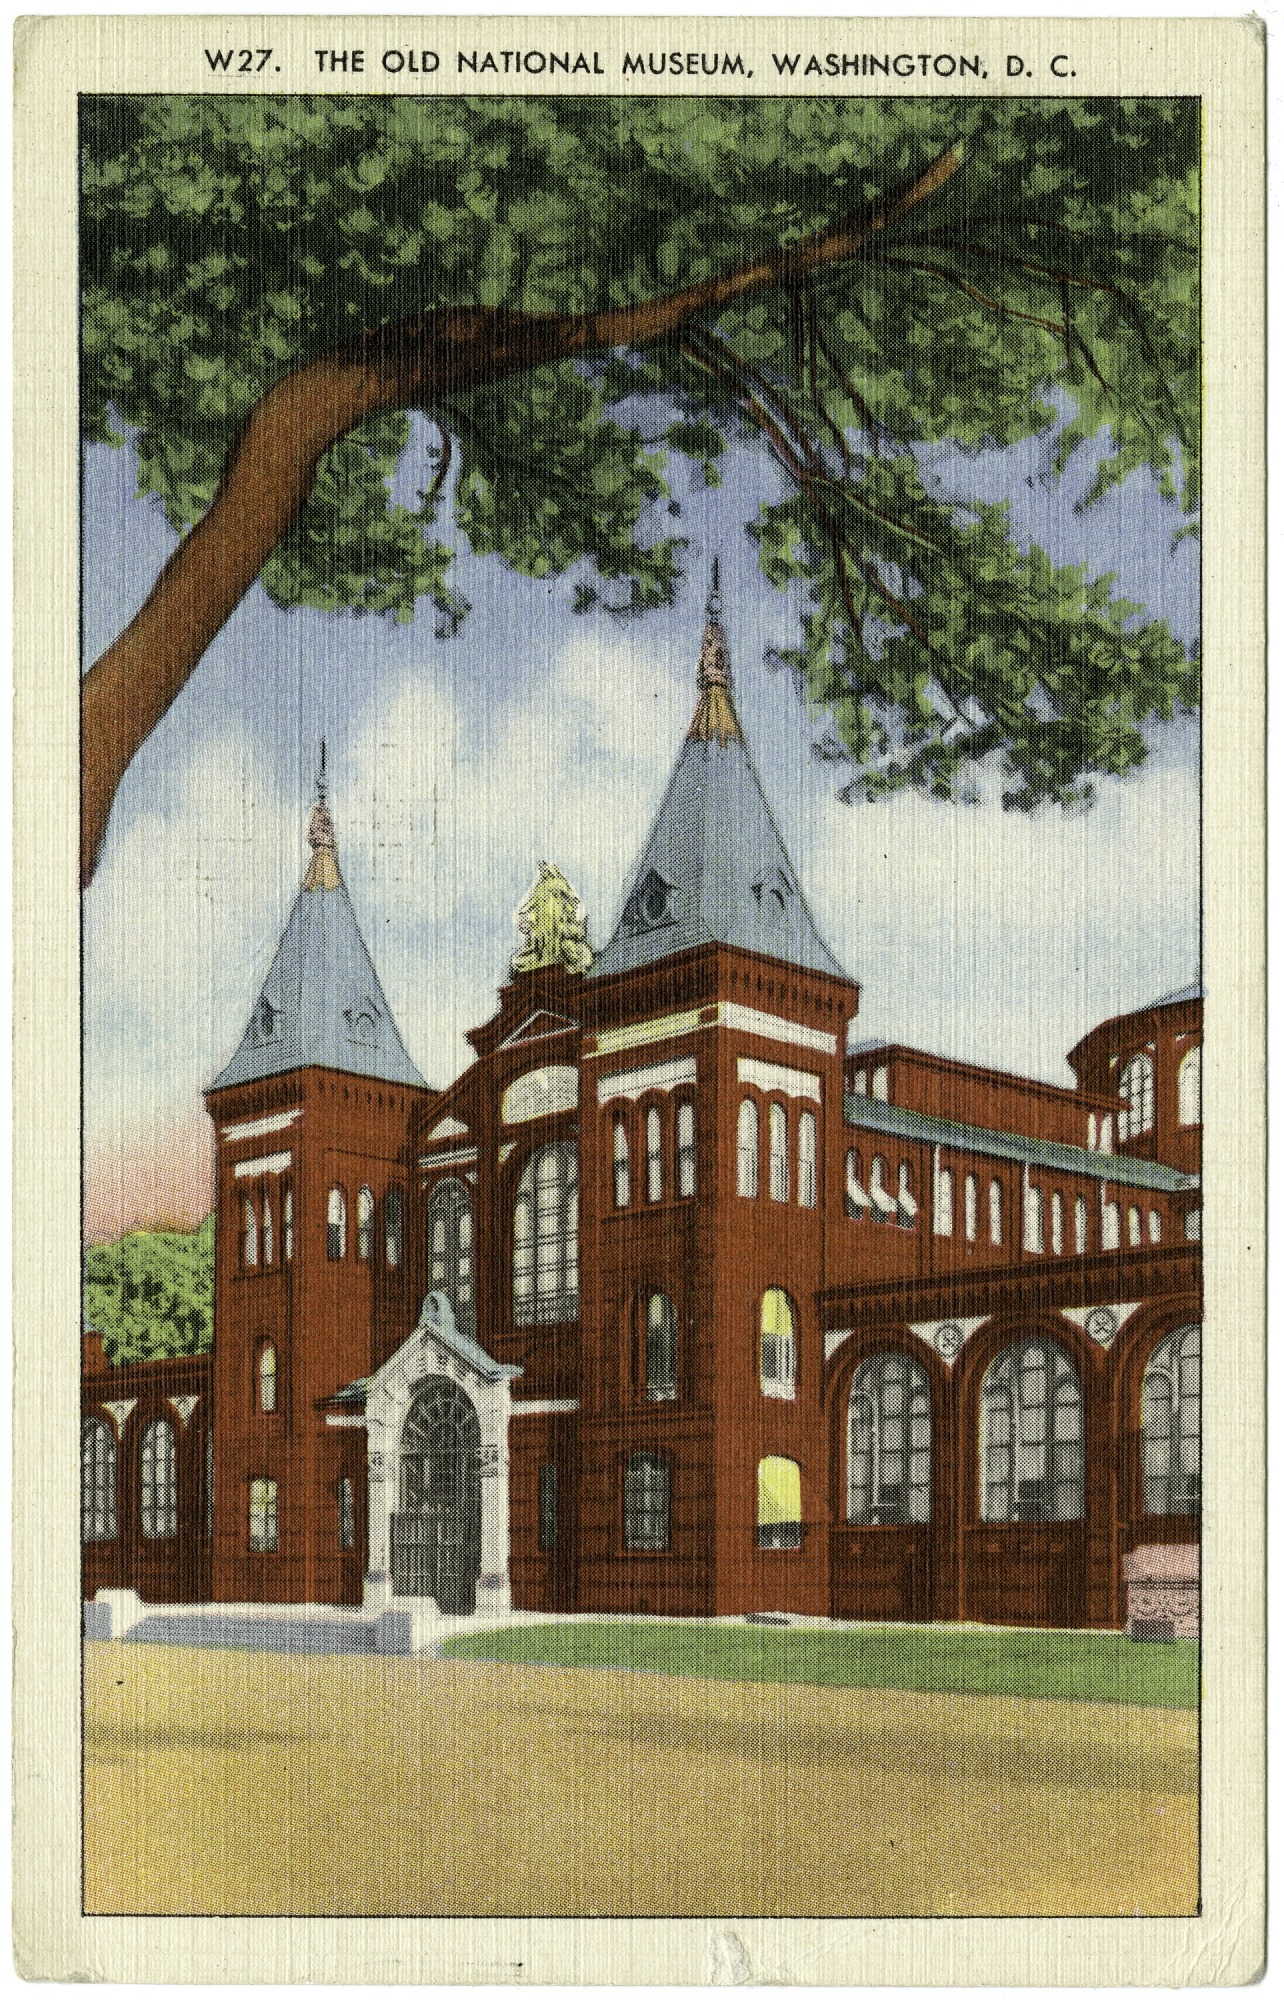 Postcard of the Old National Museum, by Capitol Souvenir Company, April 13, 1939, Smithsonian Archives - History Div, SIA2011-2285 (front) and SIA2011-2286 (back).